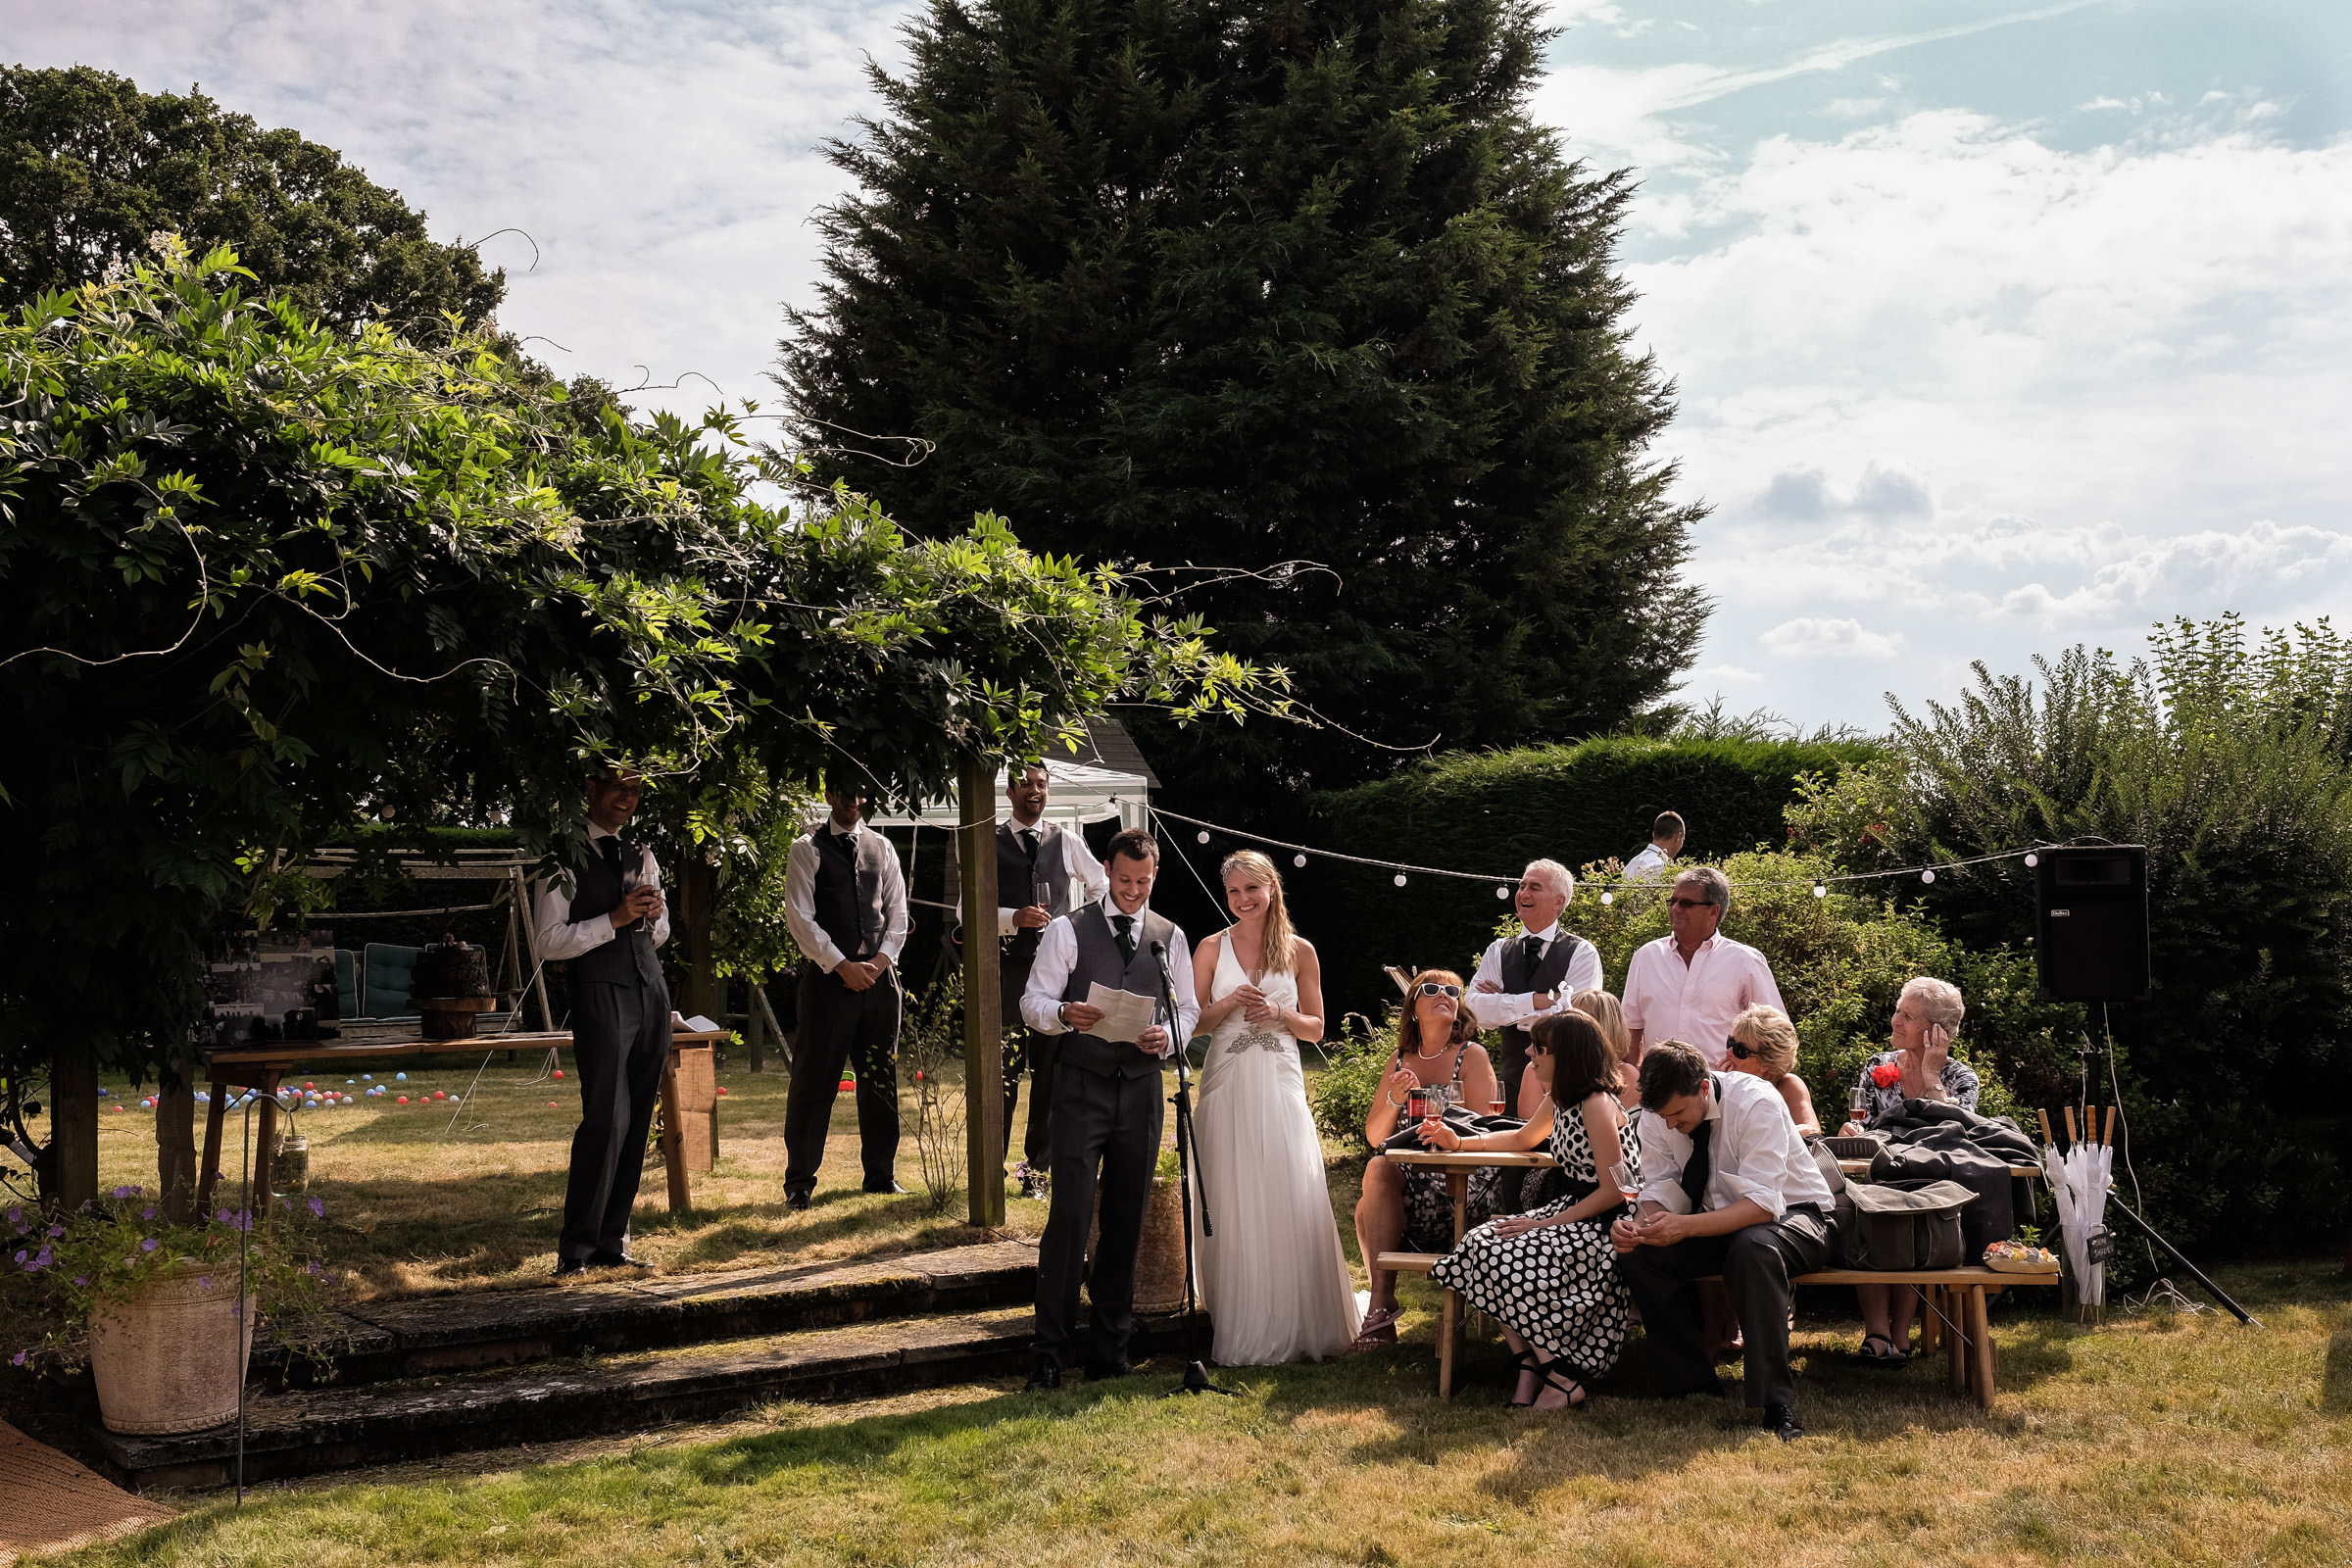 Wedding+at+Lytha+Hill+in+Haslemere+015.jpg